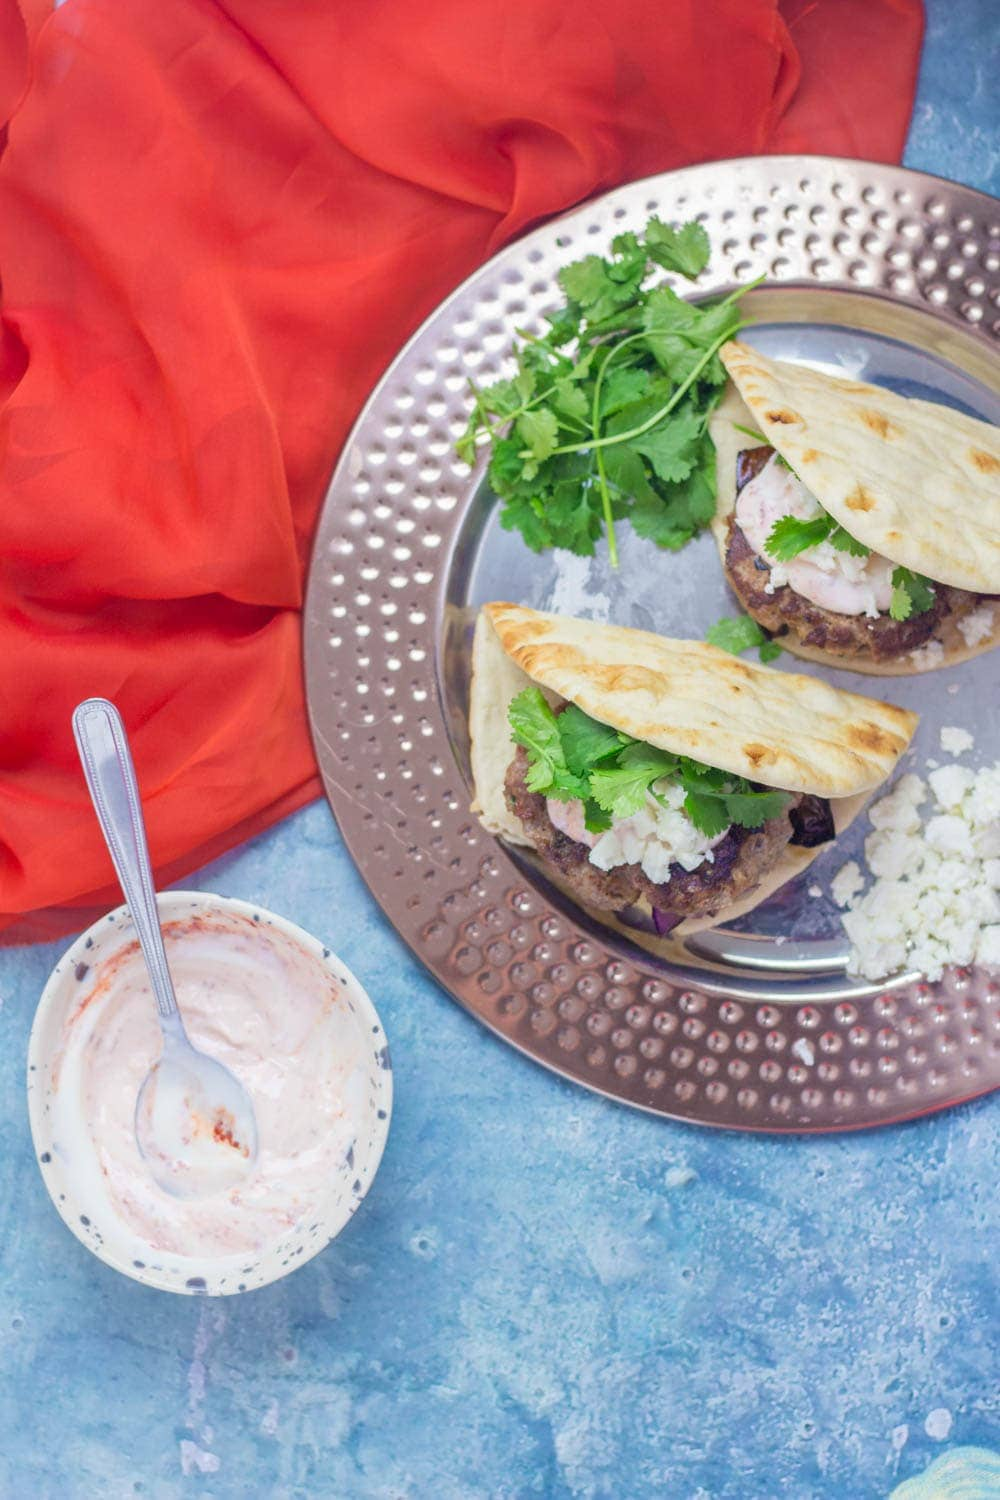 If you need a quick weeknight dinnerthat's guaranteed to impress then this Moroccan lamb burger flatbread recipe is what you need!#lamb #burger #dinner #recipe